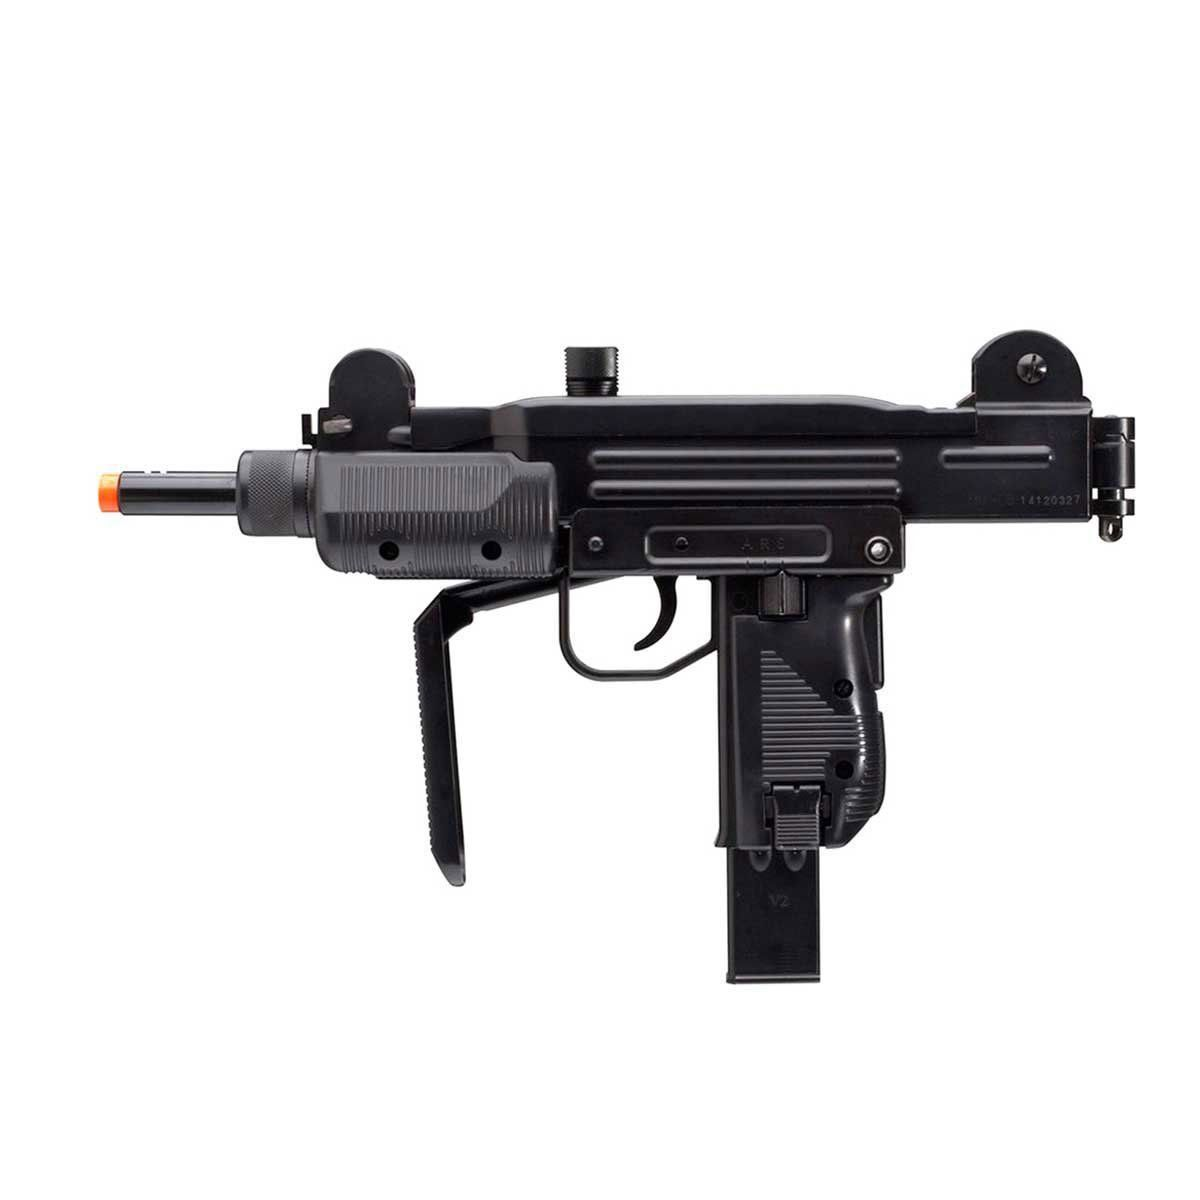 Submetralhadora de Airsoft KWC Mini Uzi Metal CO2 6mm